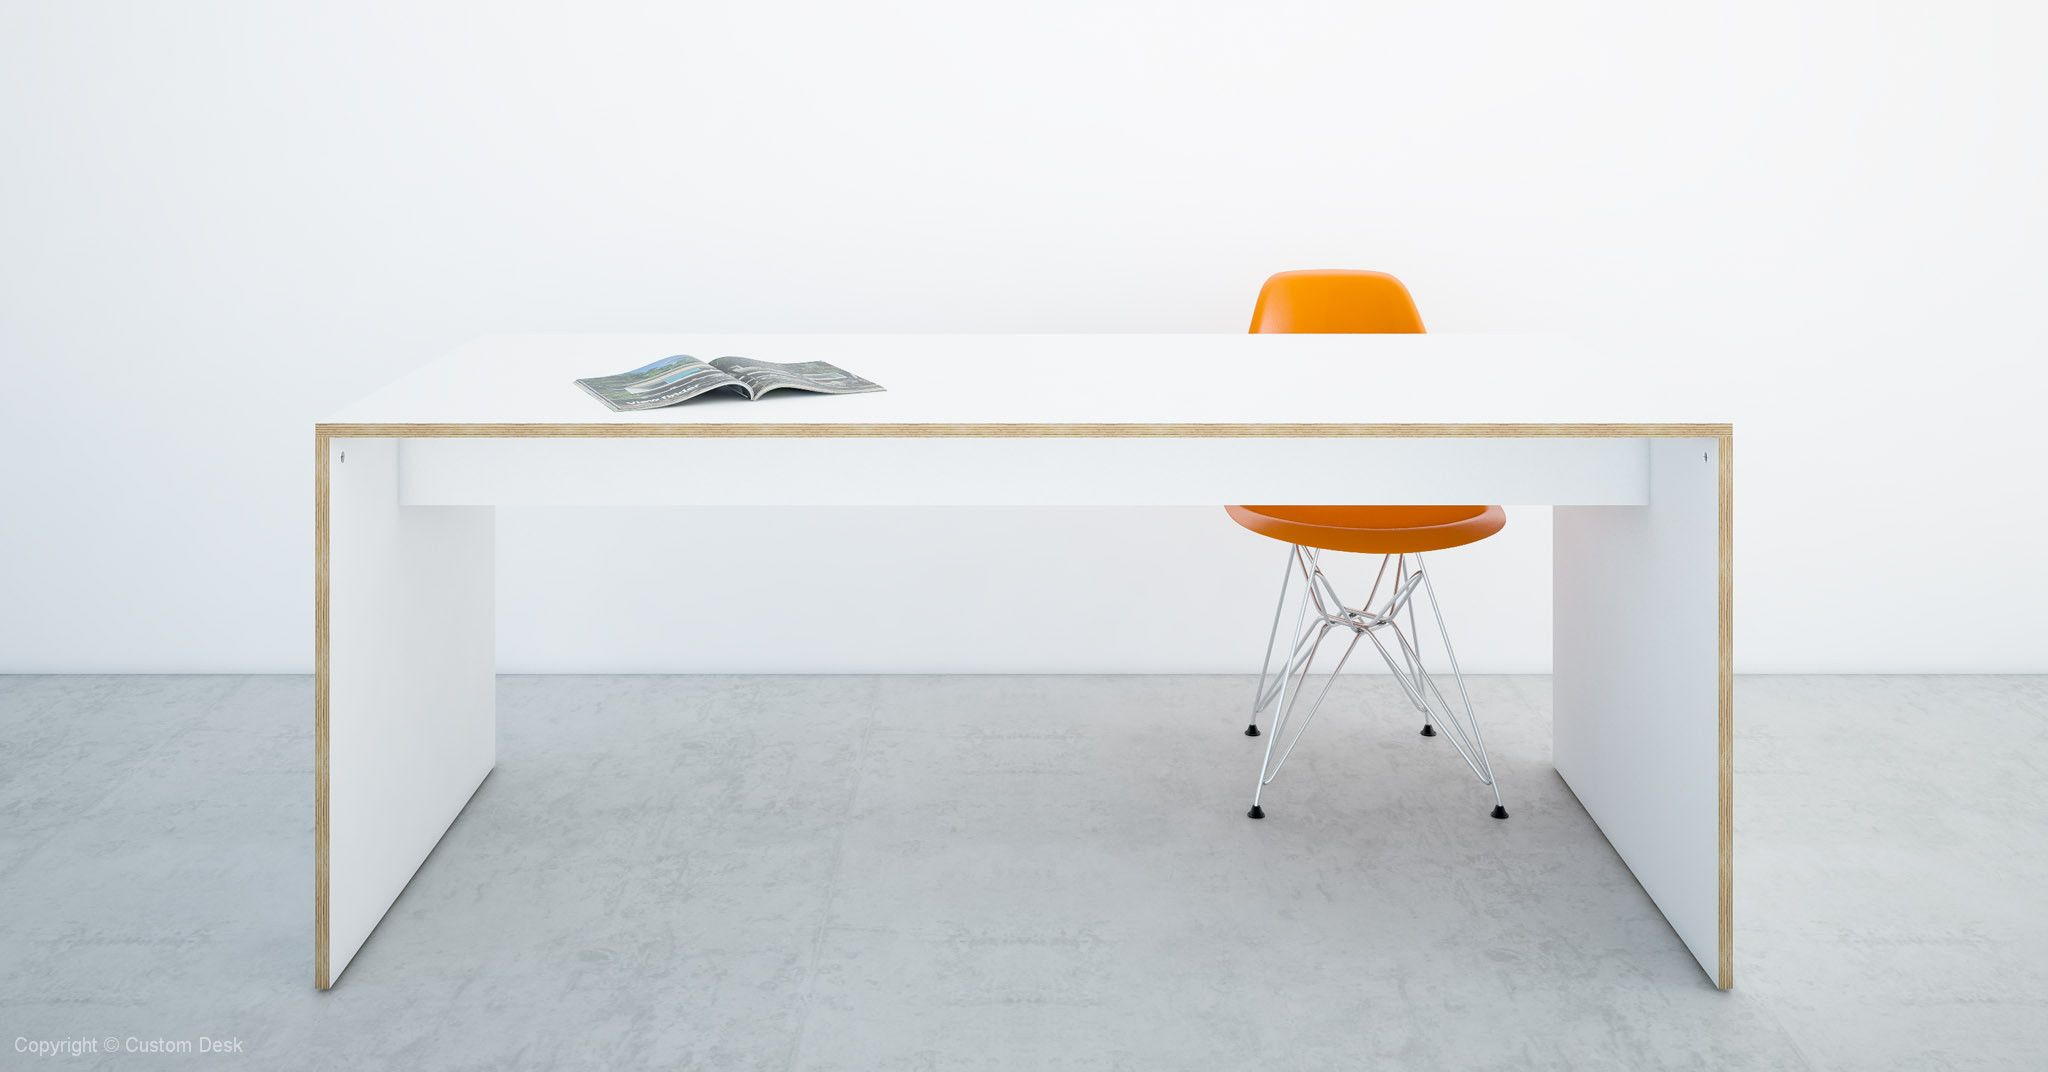 Custom Plywood Table with Solid Sides 18mm | Plywood table, Plywood ...